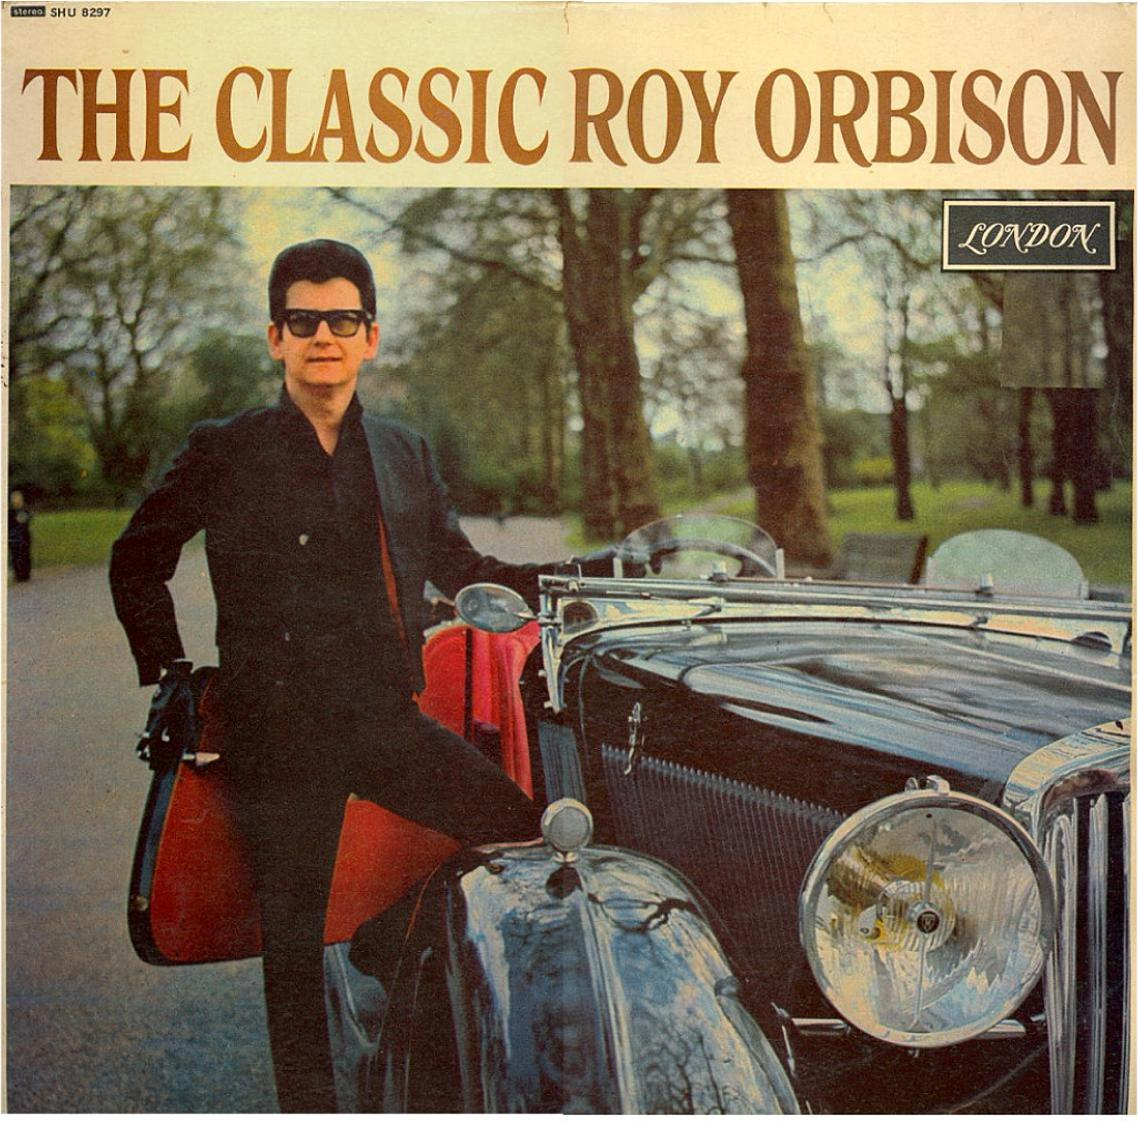 The Classic Roy Orbison SHU 8297